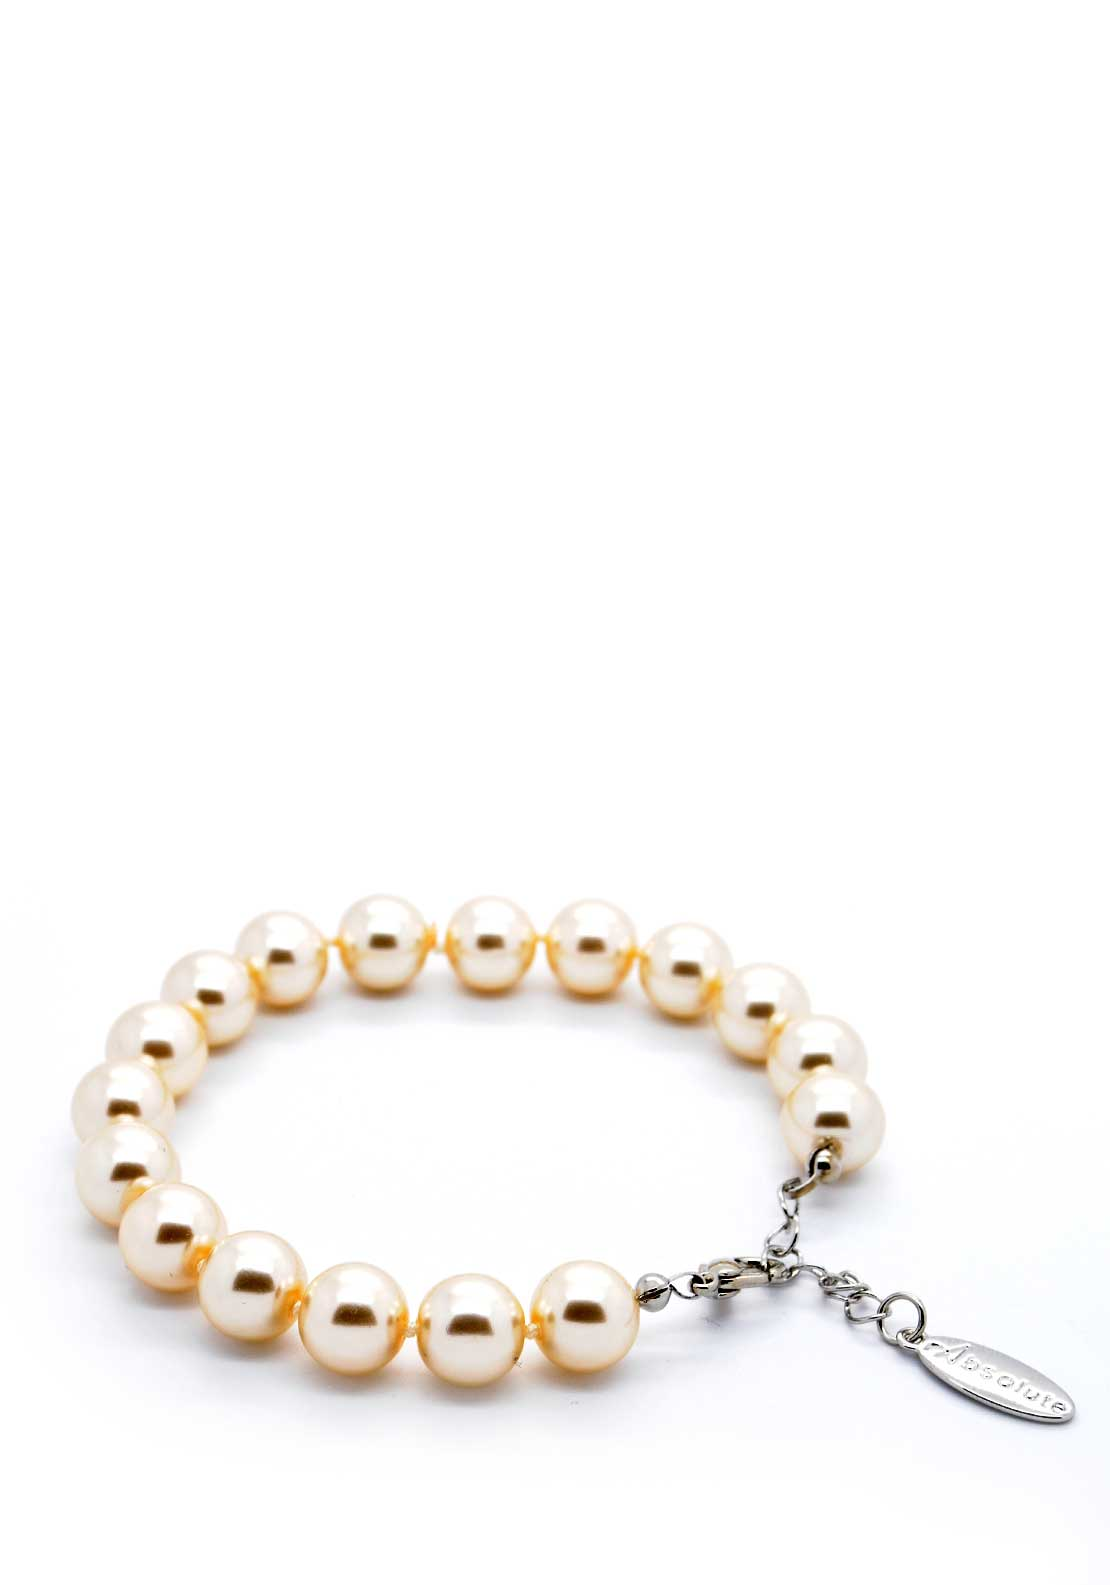 Absolute Jewellery Pearl Bracelet with Silver fixings, Pearl